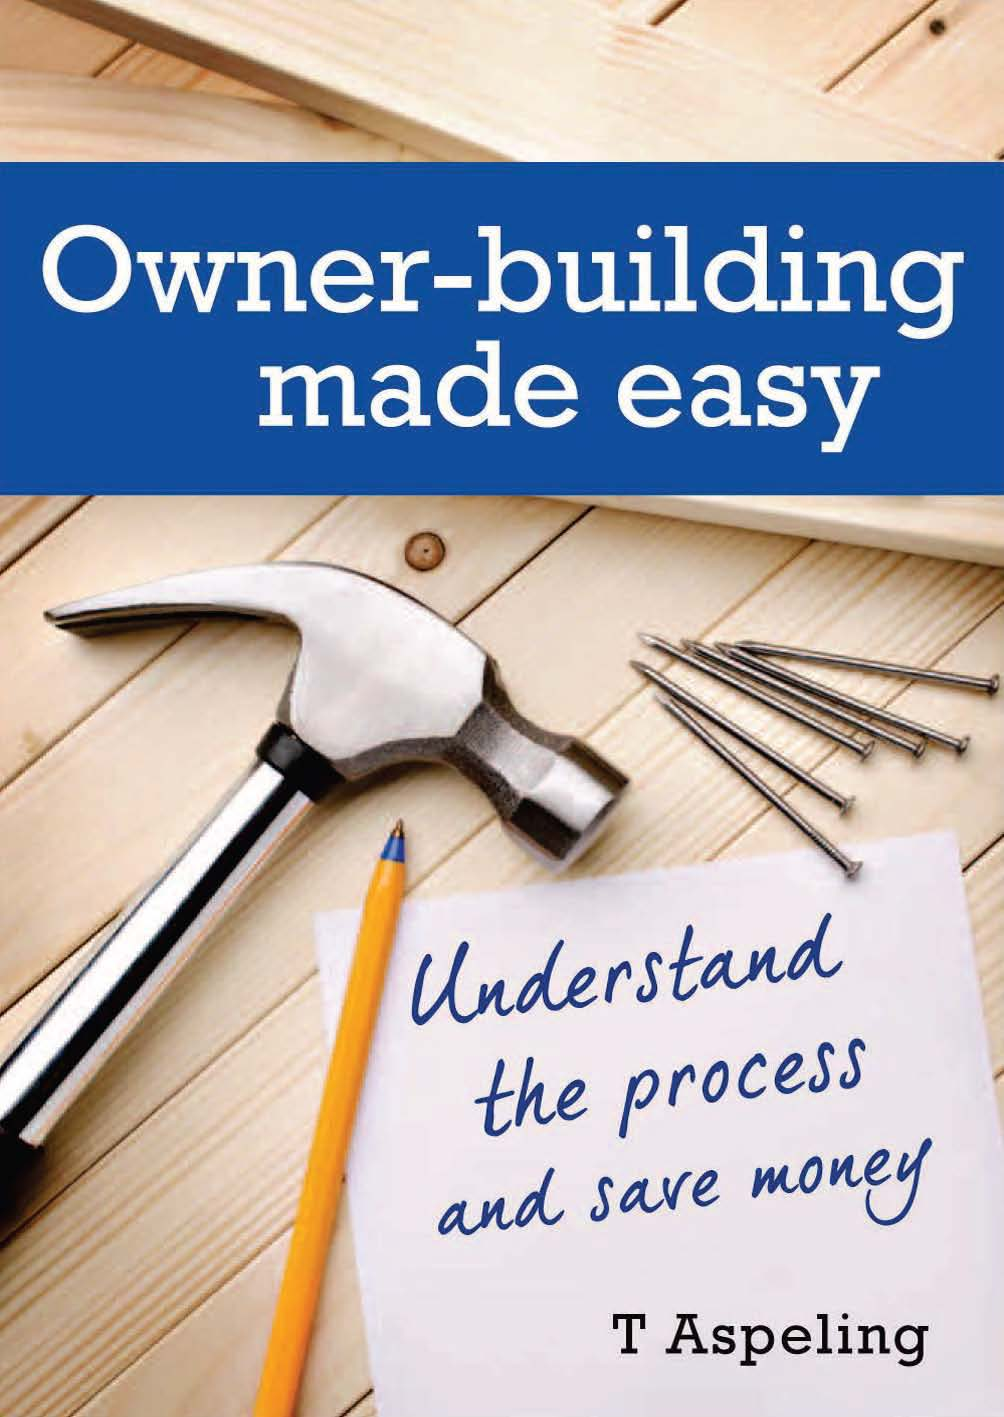 Owner Building Made Easy Understand the process and save money